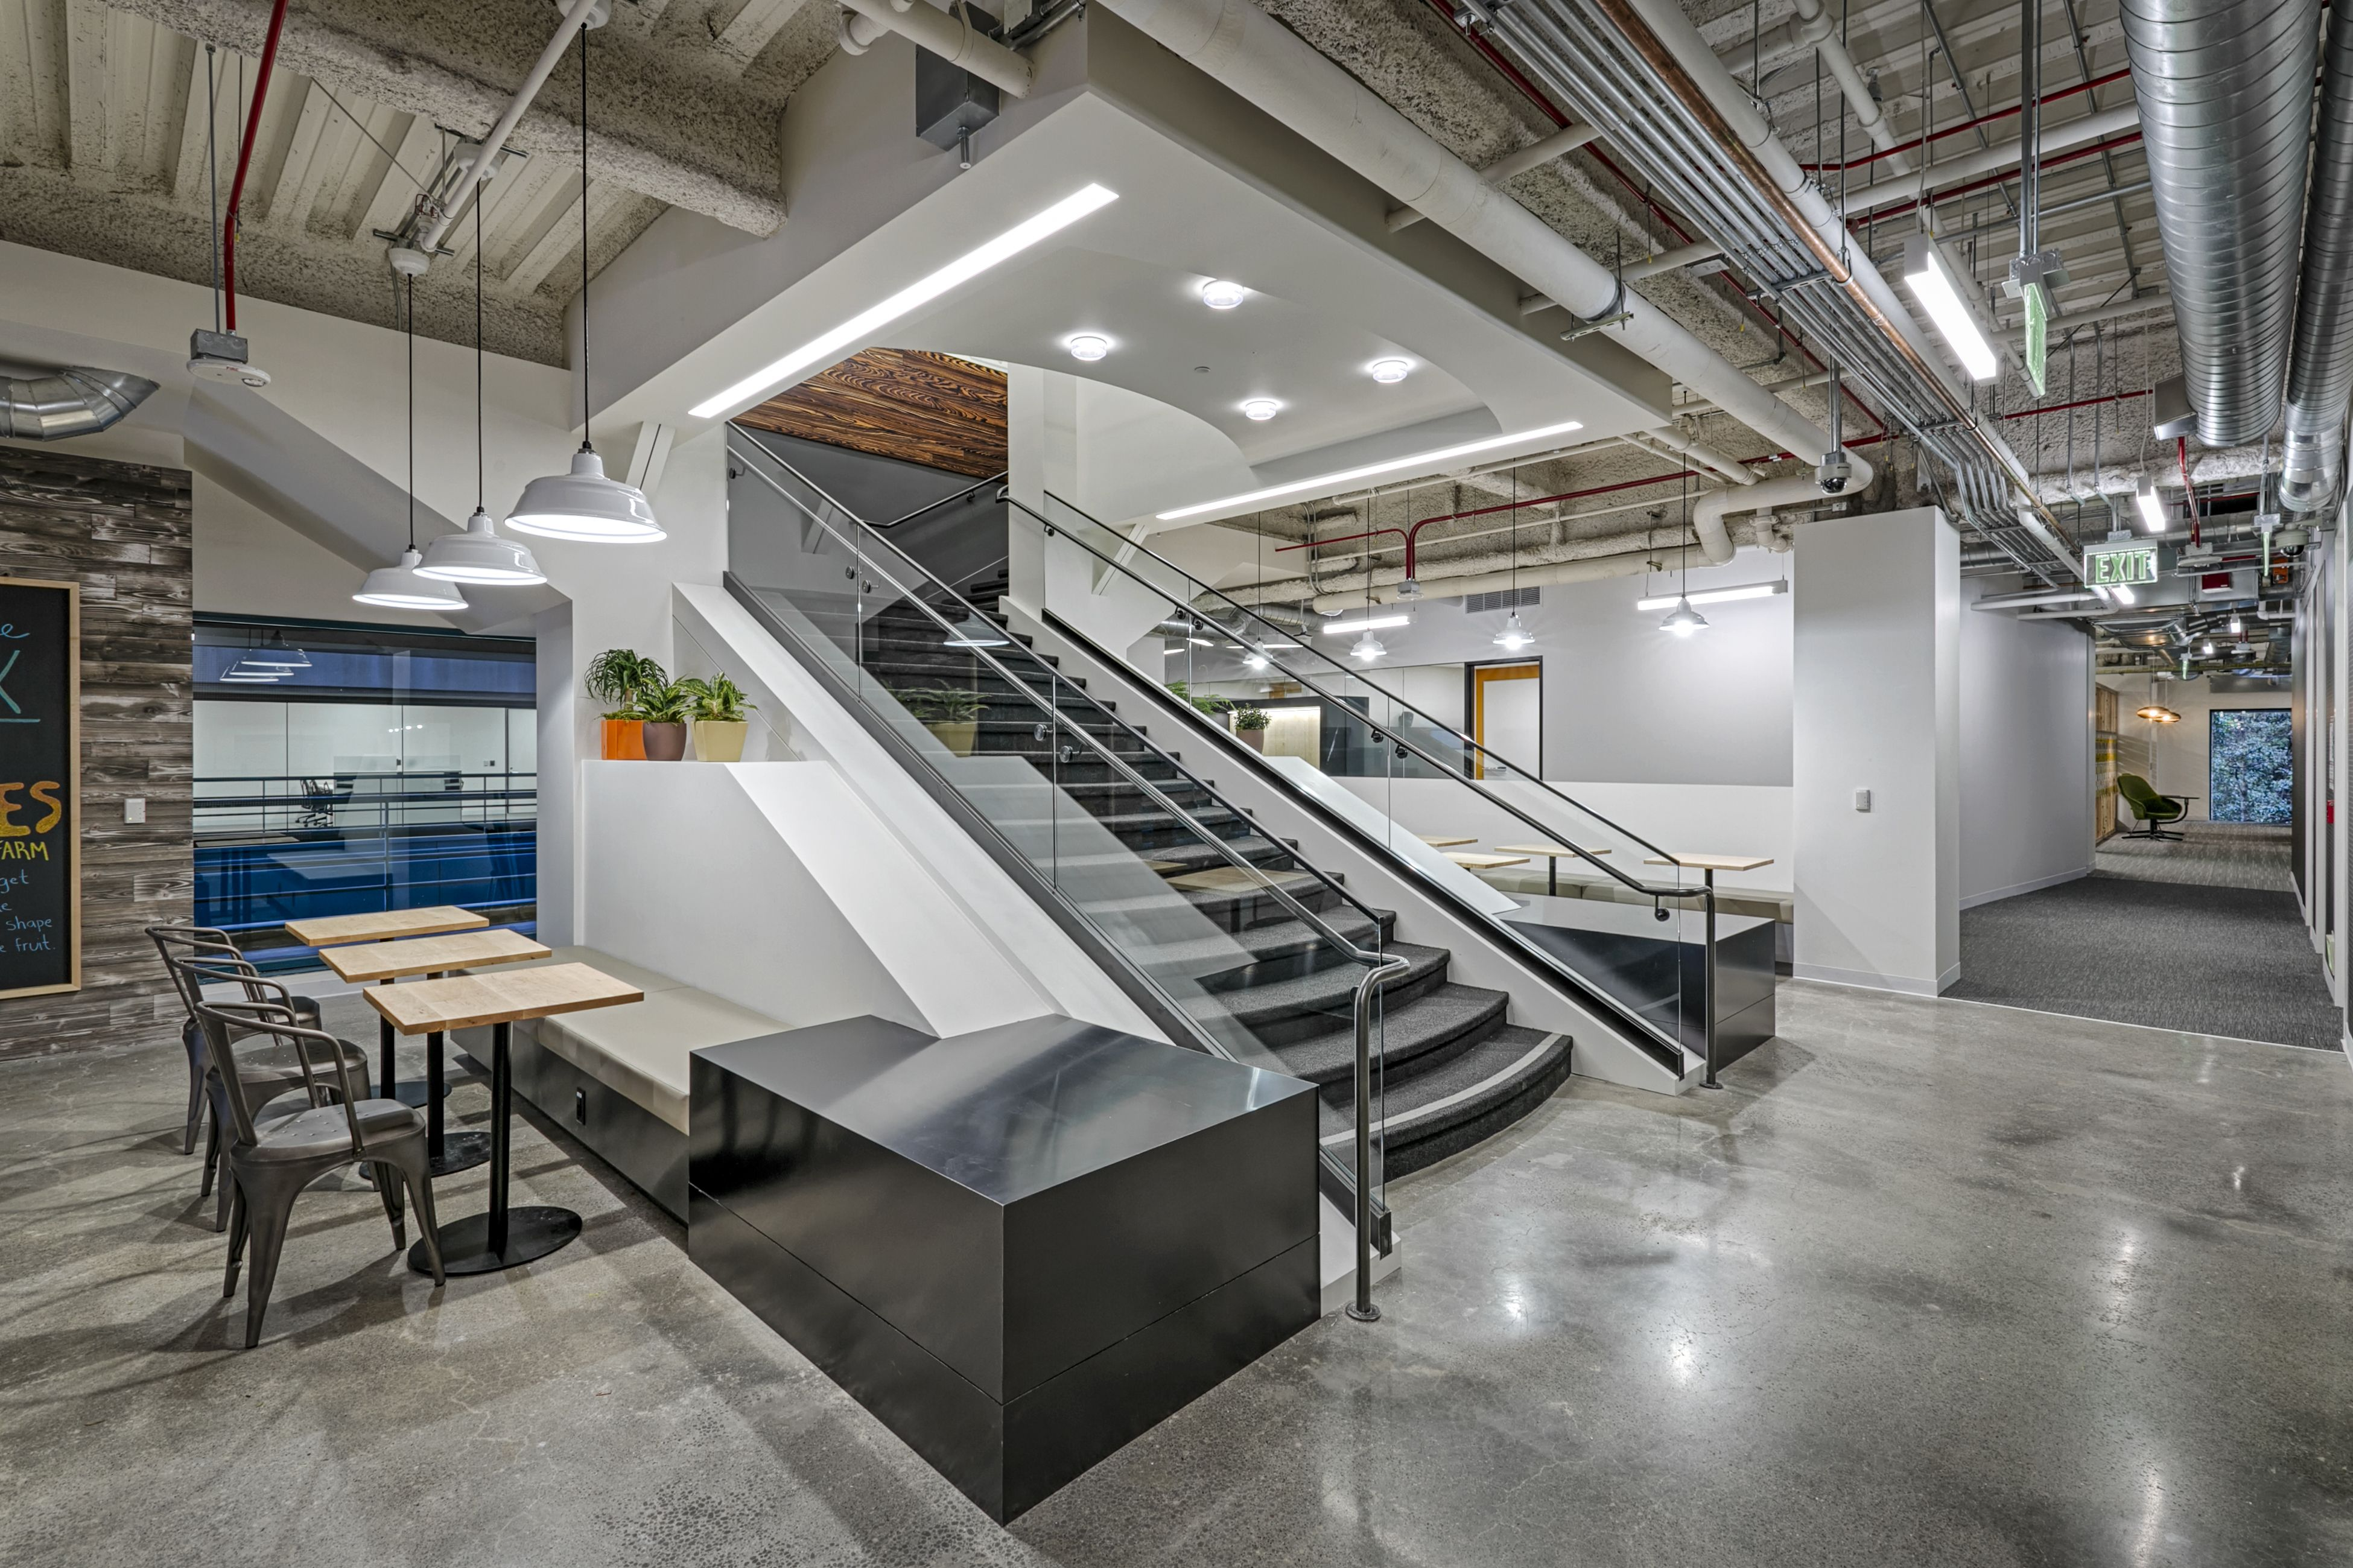 Bcci Built An Interconnecting Staircase As Part Of The Multi